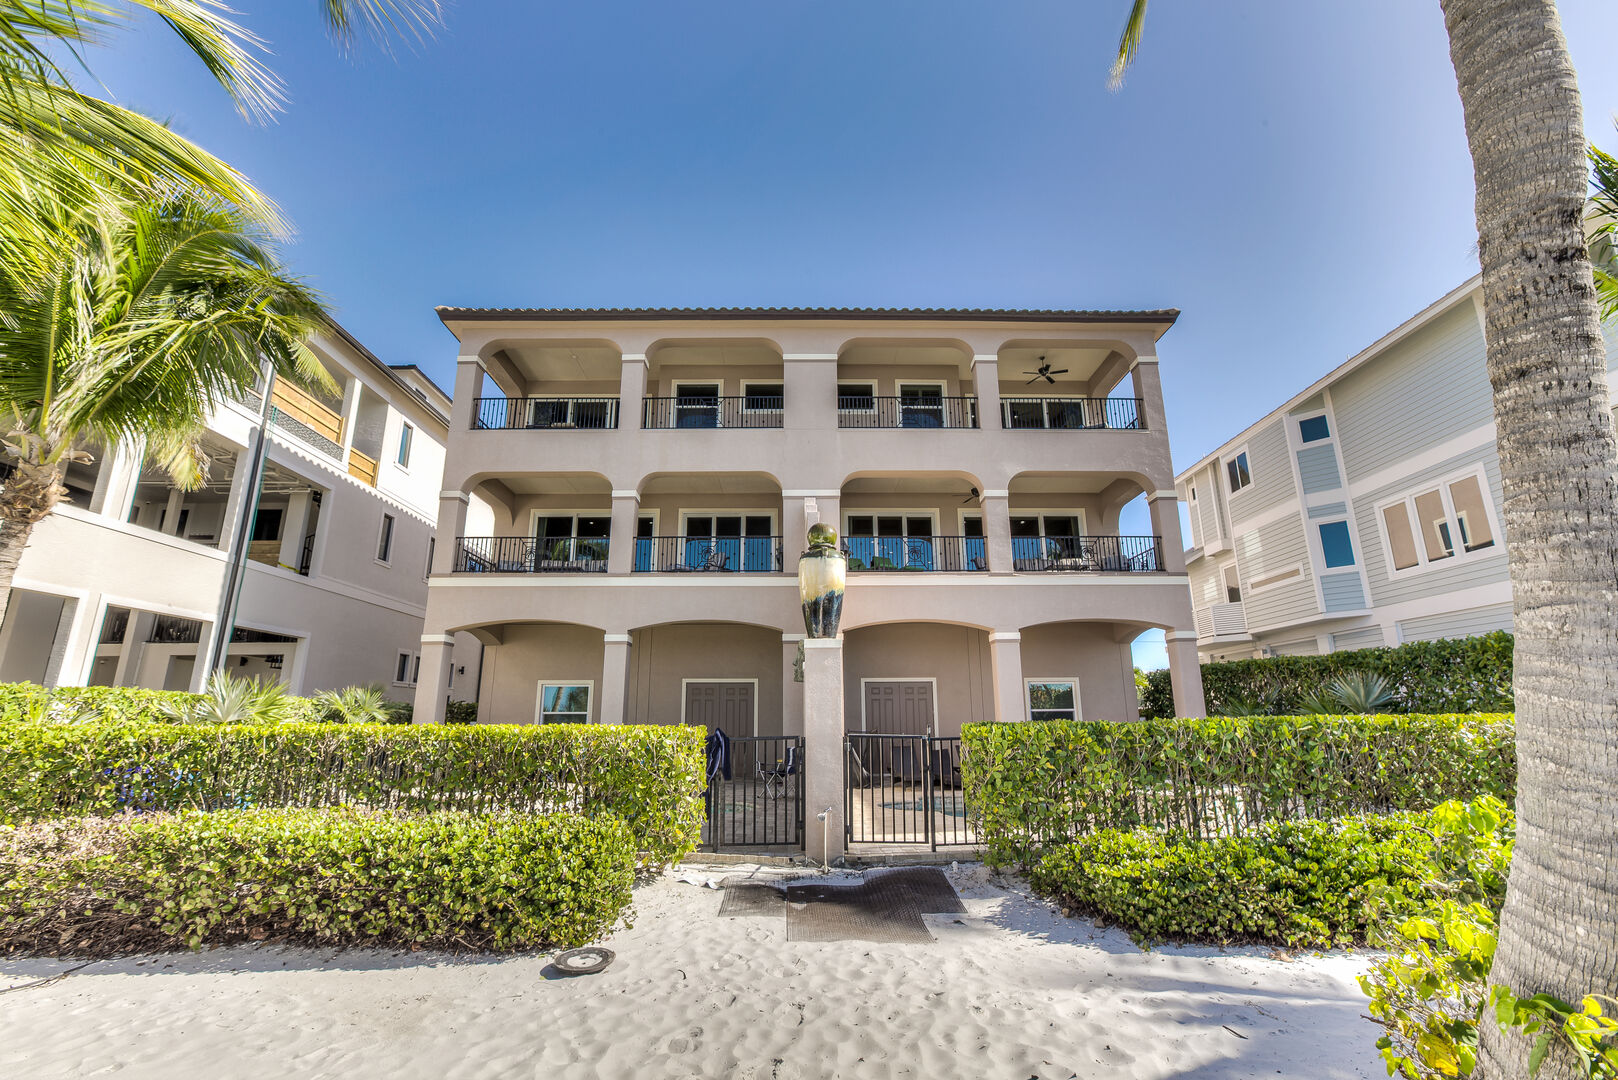 Exterior view of our Fort Myers vacation home rental